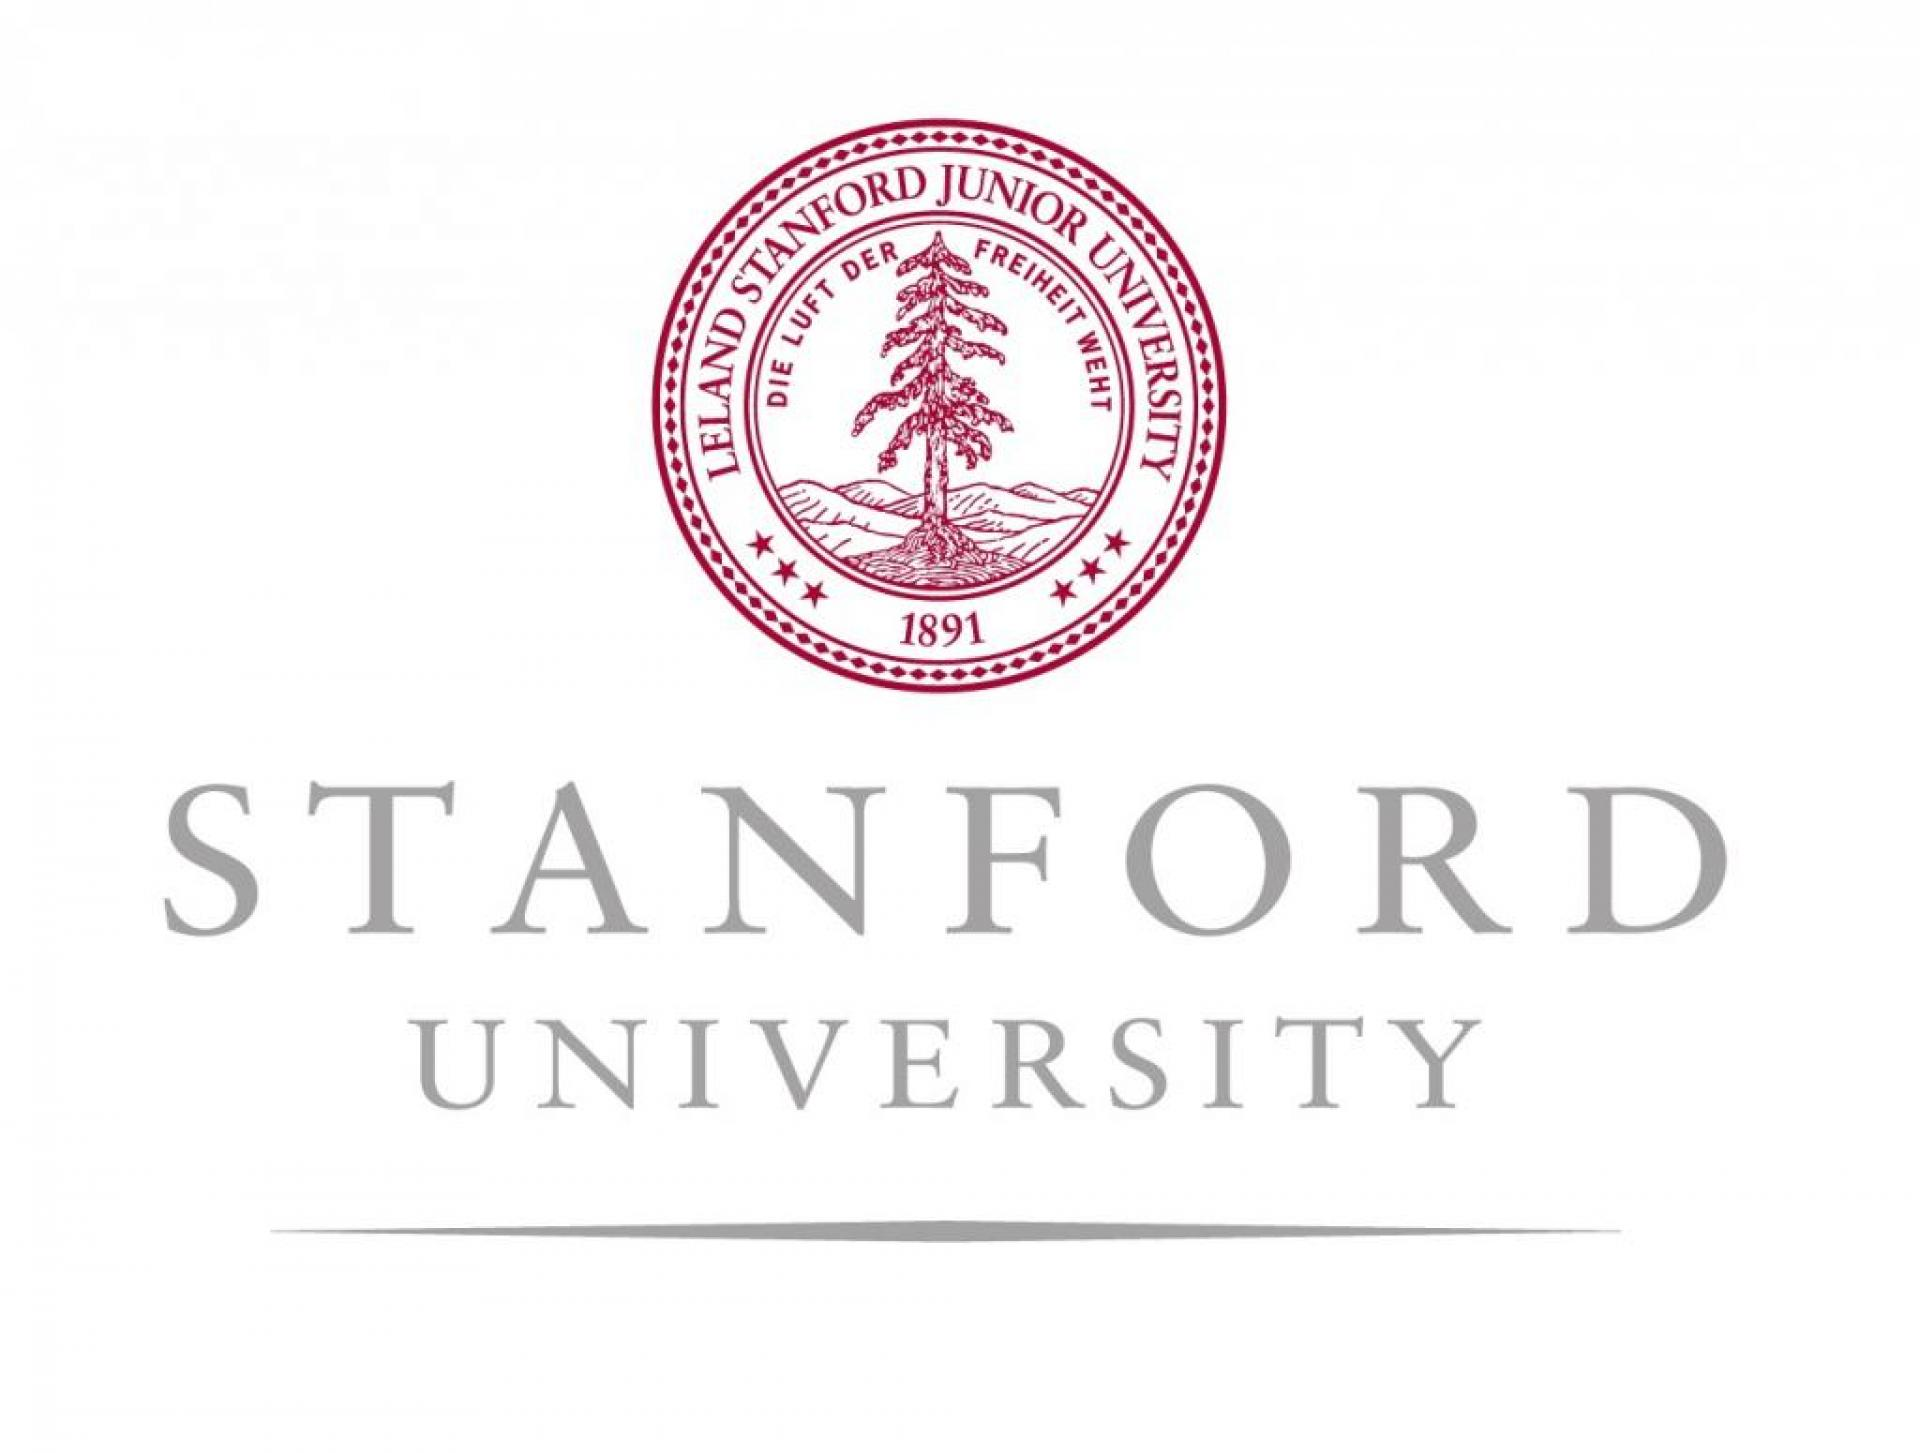 stanford university dating site Stanford university is a private institution that was founded in 1885 it has a total undergraduate enrollment of 7,034, its setting is suburban, and the campus size is 8,180 acres.